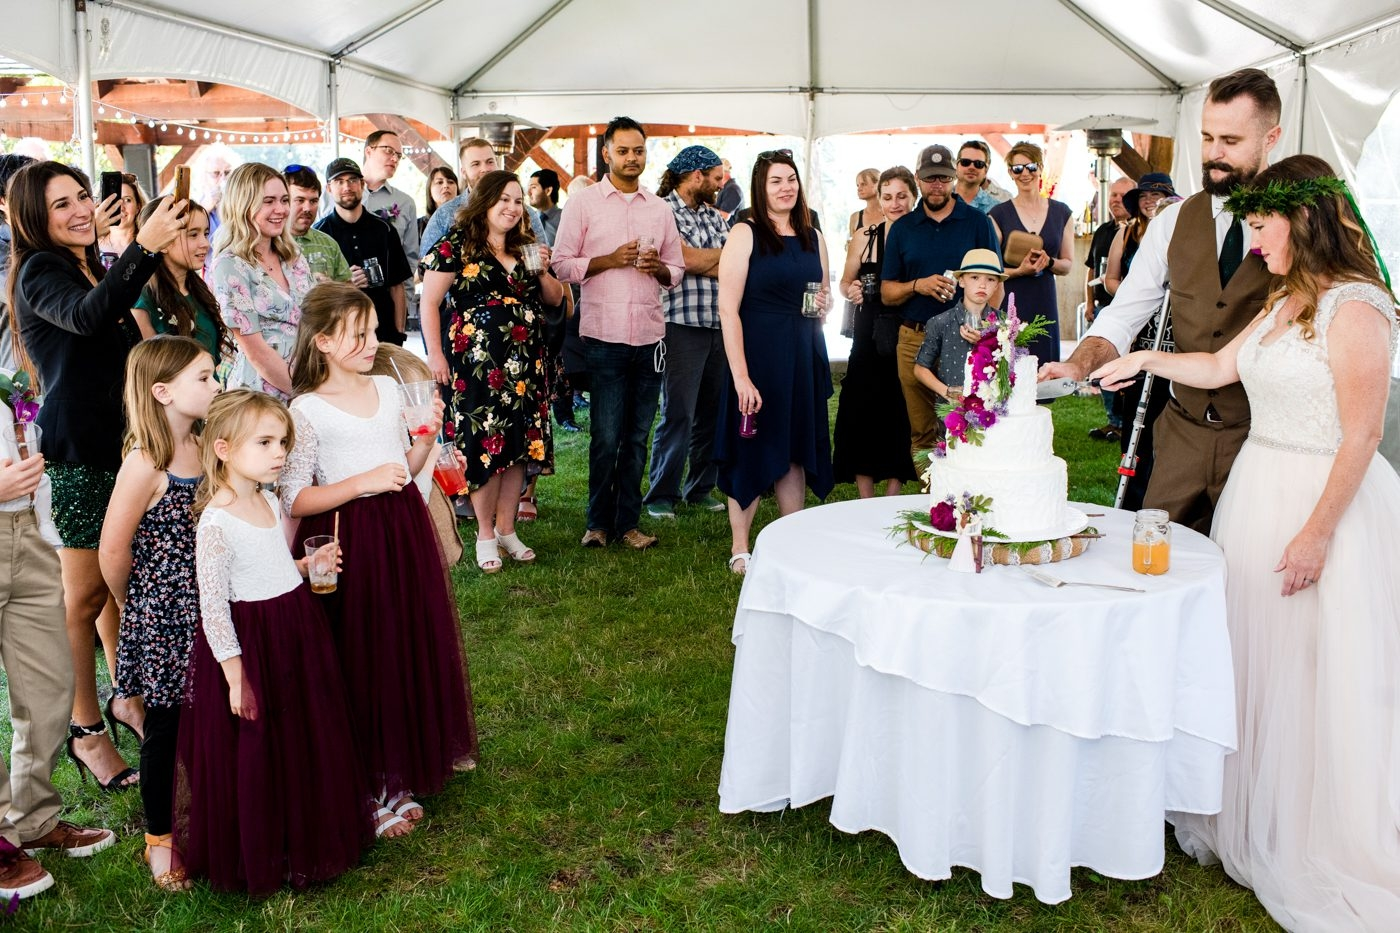 The-Nest-on-Swan-River-Wedding-Day-cake-cutting